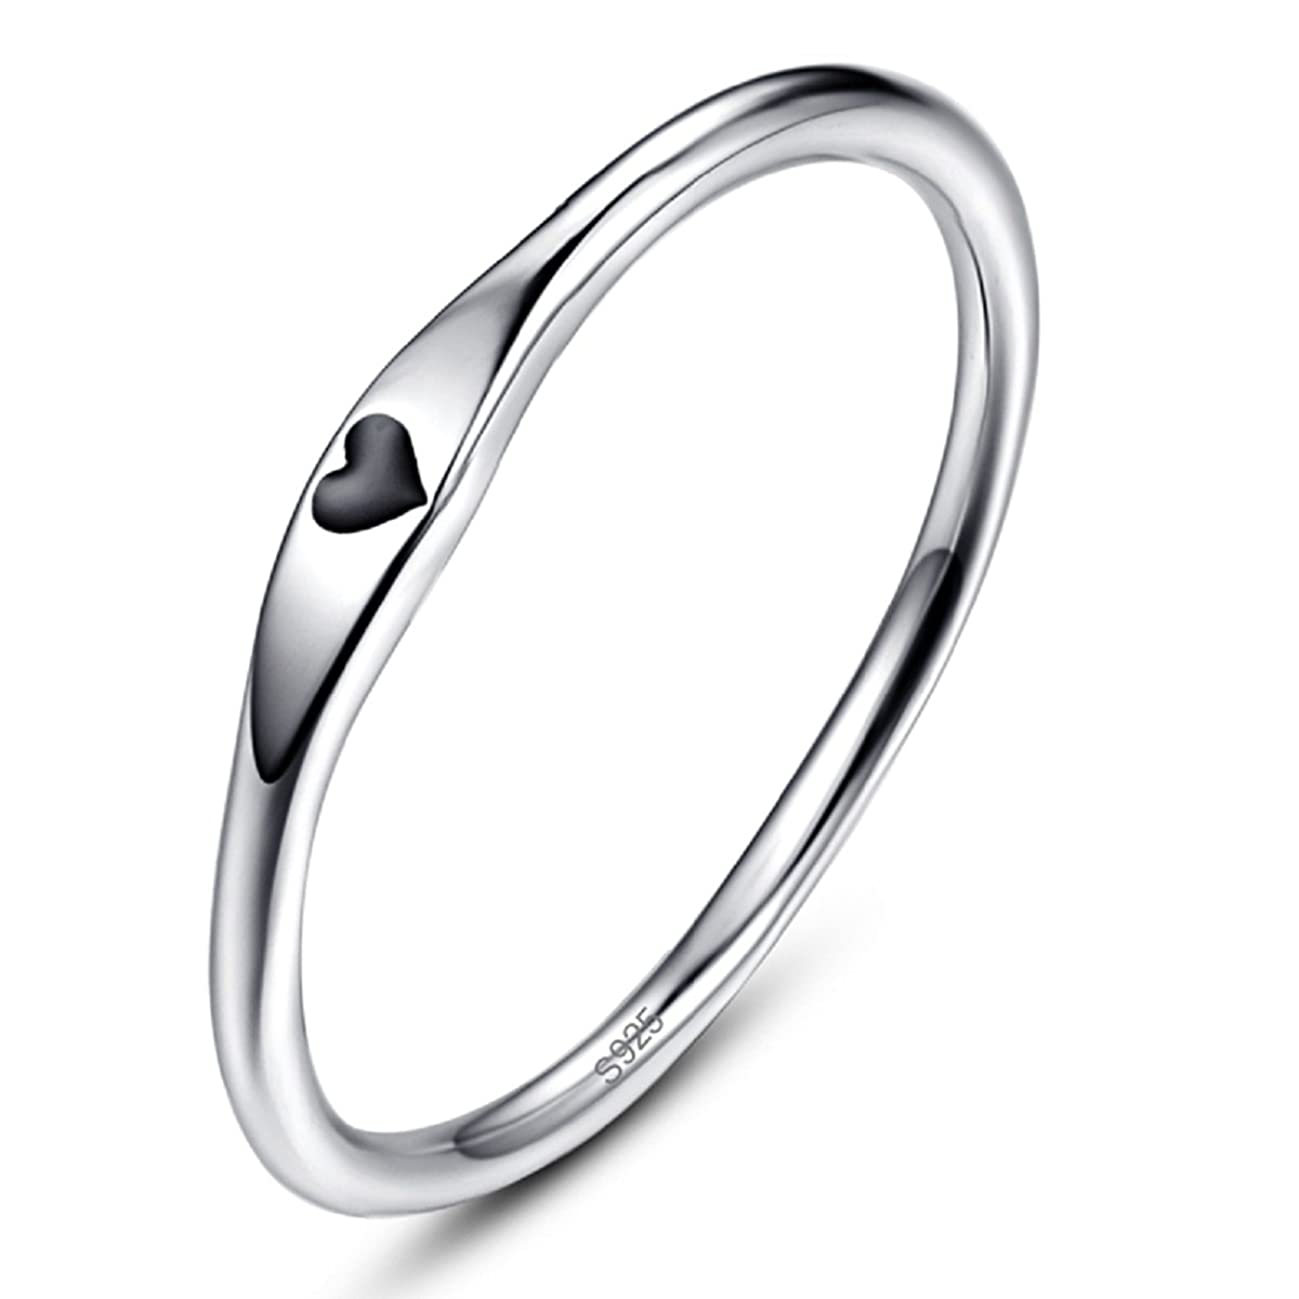 AVECON 925 Sterling Silver Simple Carve Heart Wedding Band Stackable Promise Ring for Her Size 5-10